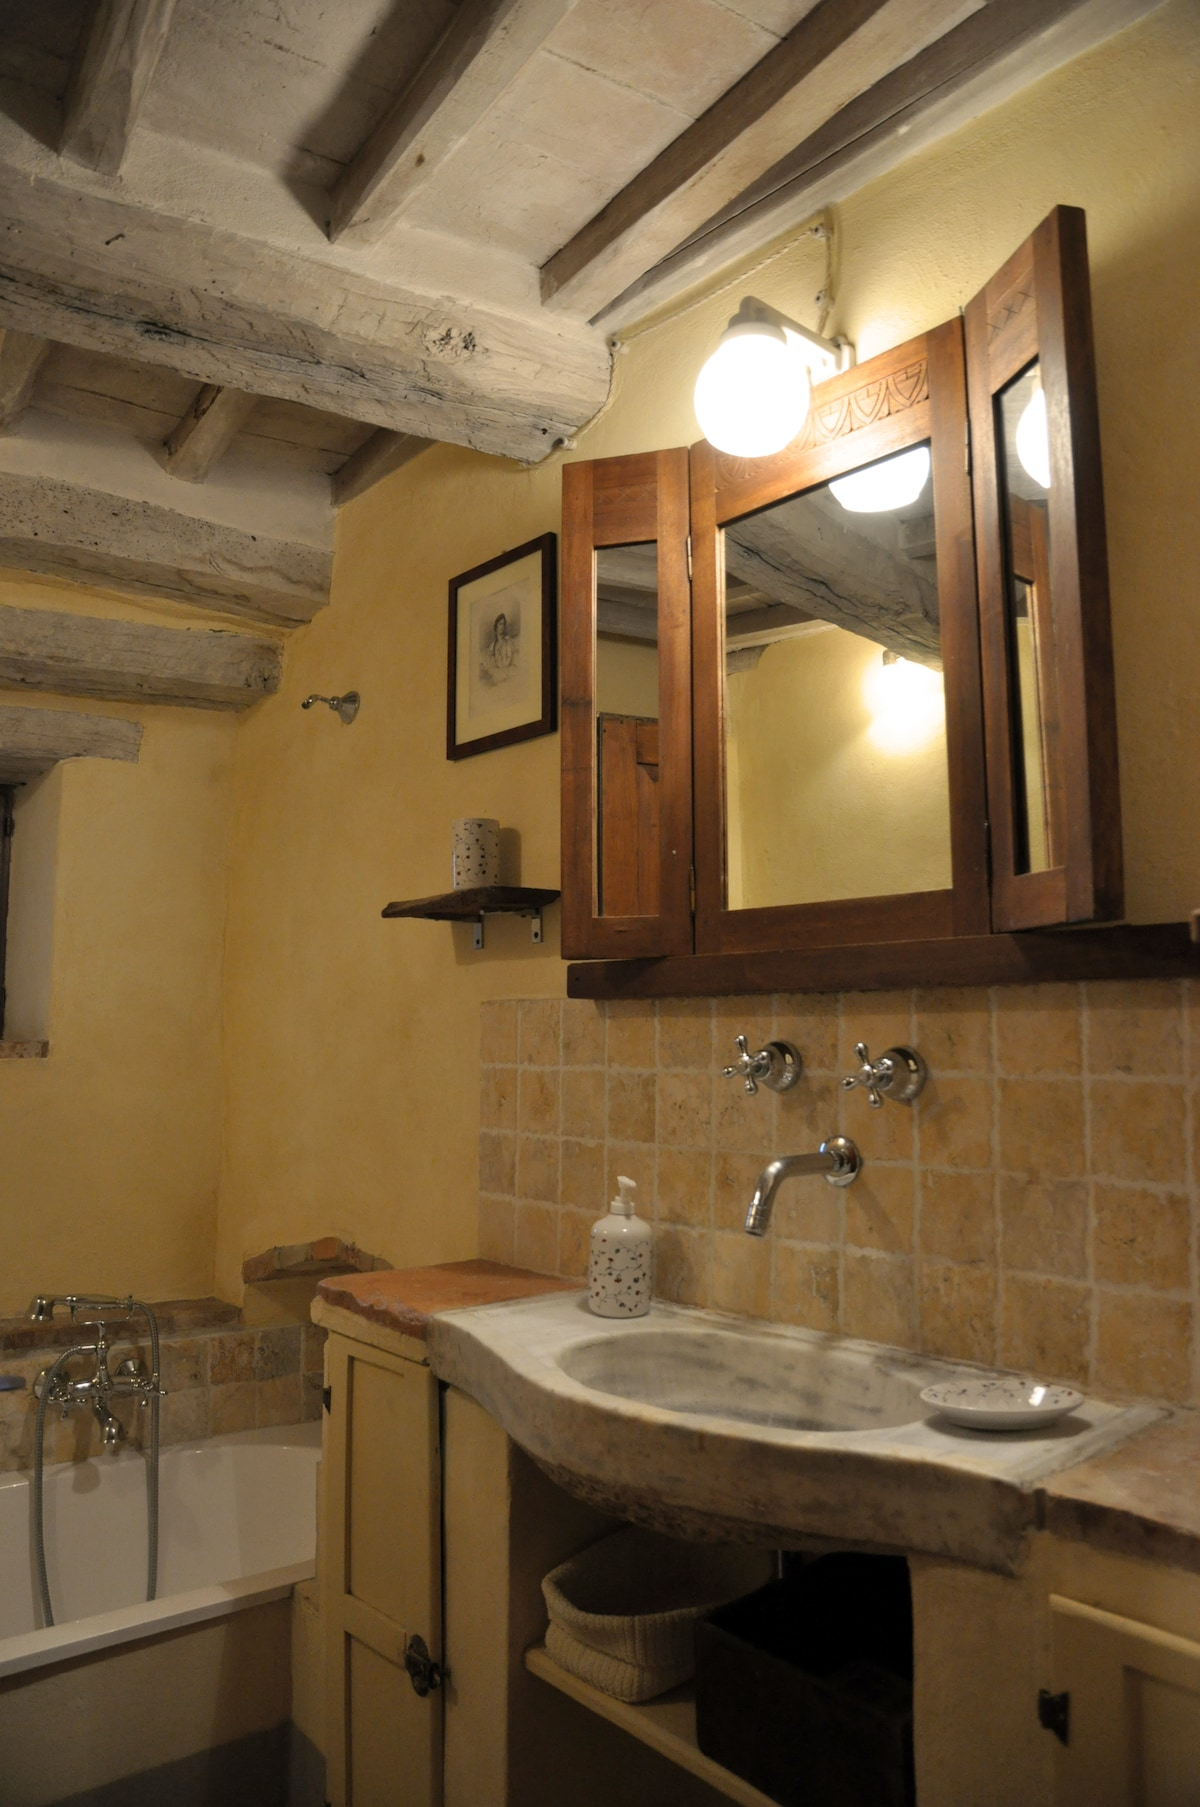 Bagno con vasca/ Bathroom with tub